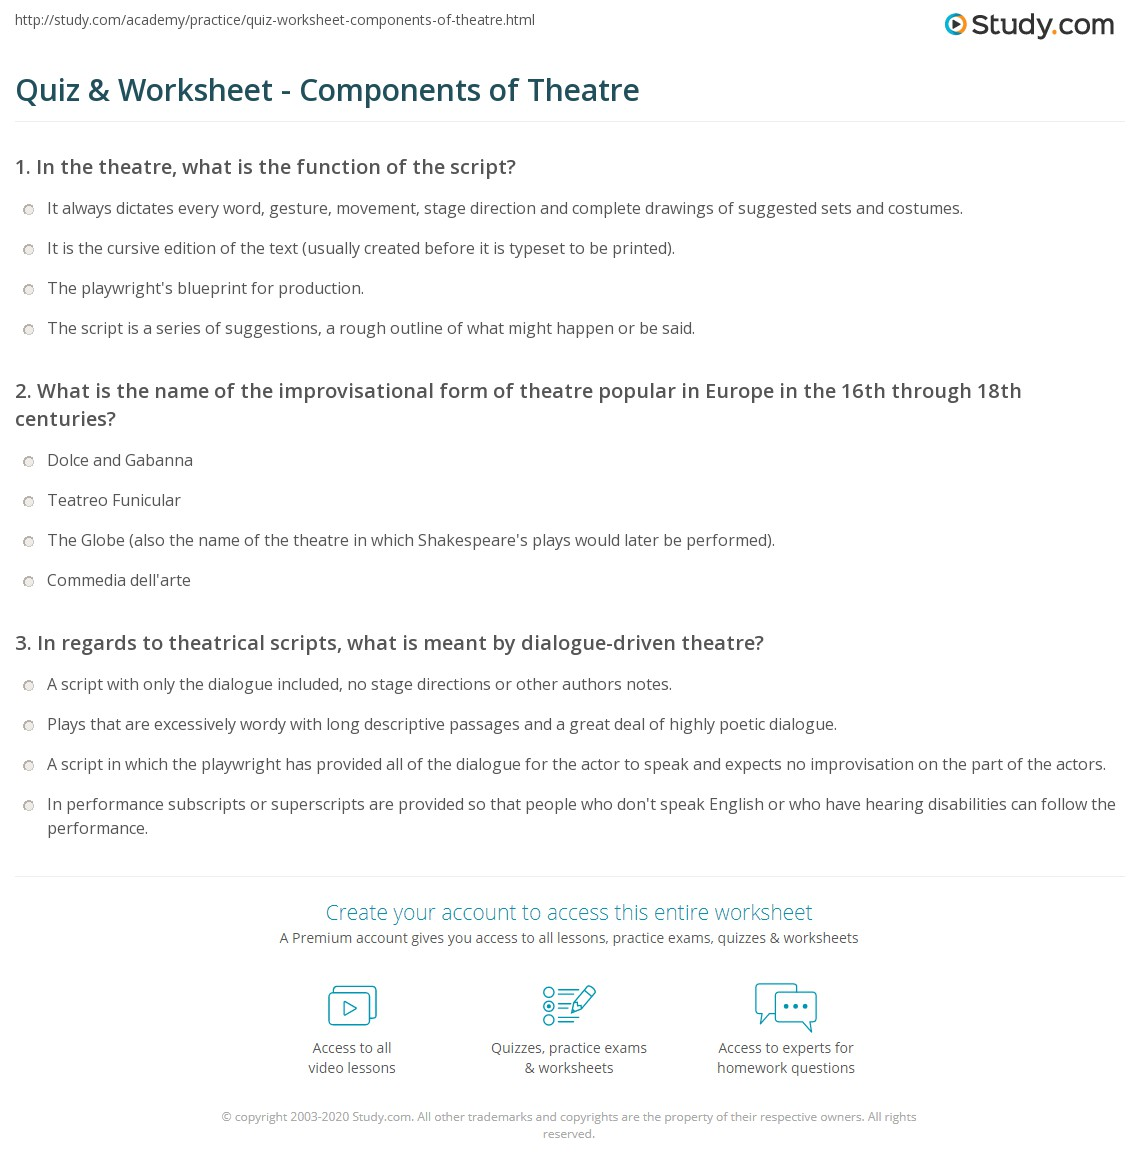 Quiz & Worksheet - Components of Theatre | Study com